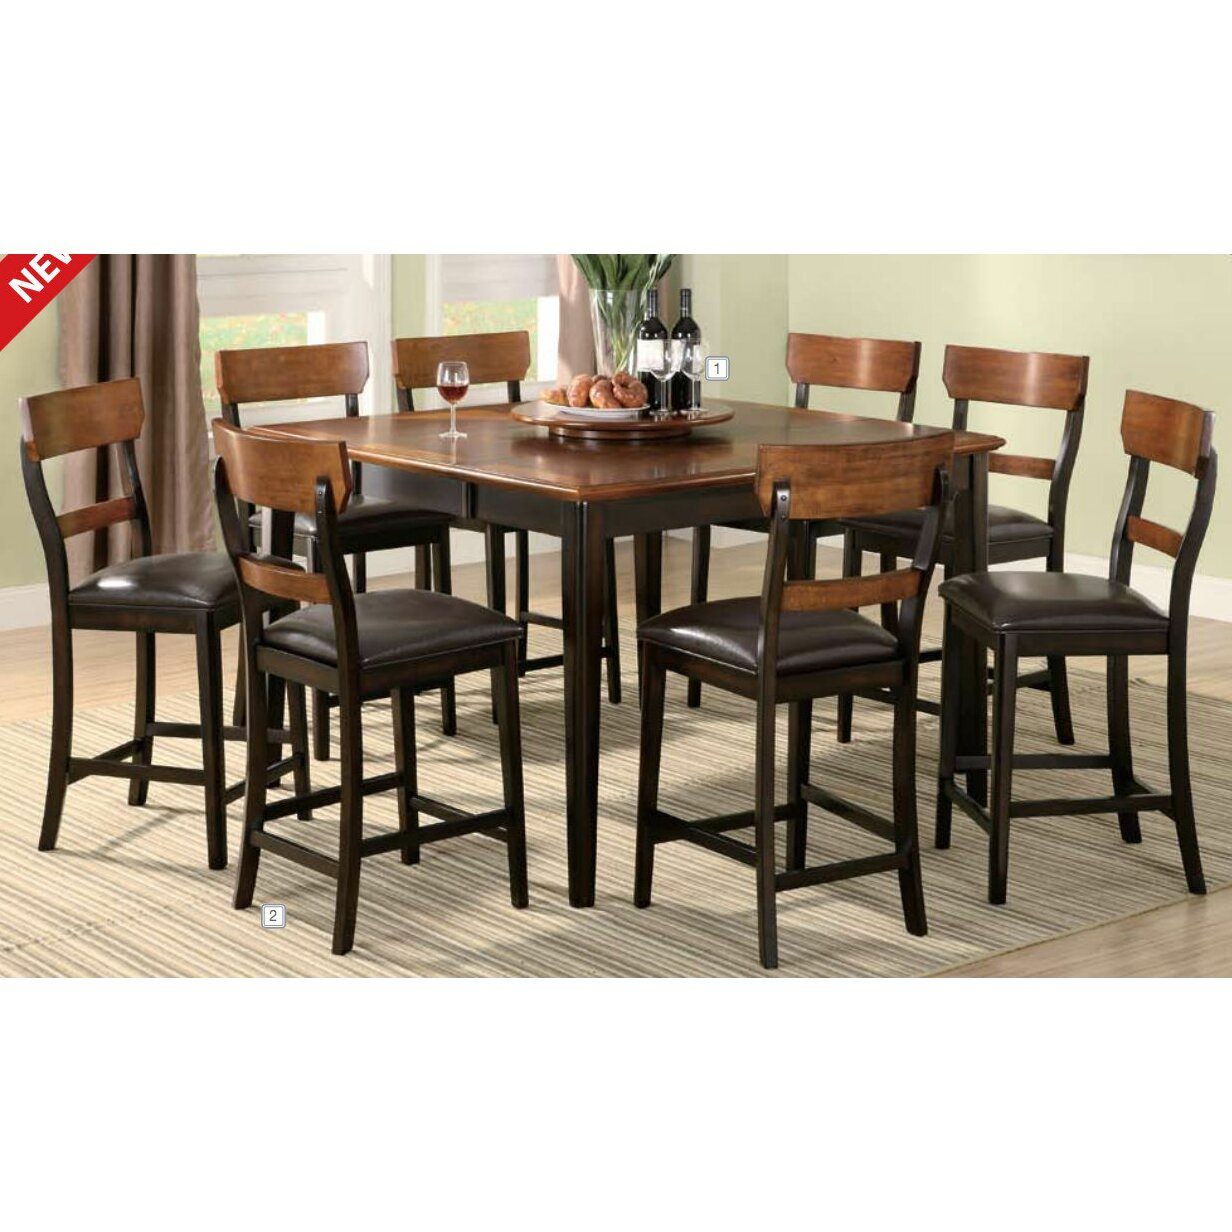 Loon Peak Coaldale Counter Height Extendable Dining Table  : Coaldale Counter Height Dining Table LOON2639 from www.wayfair.com size 1232 x 1232 jpeg 256kB